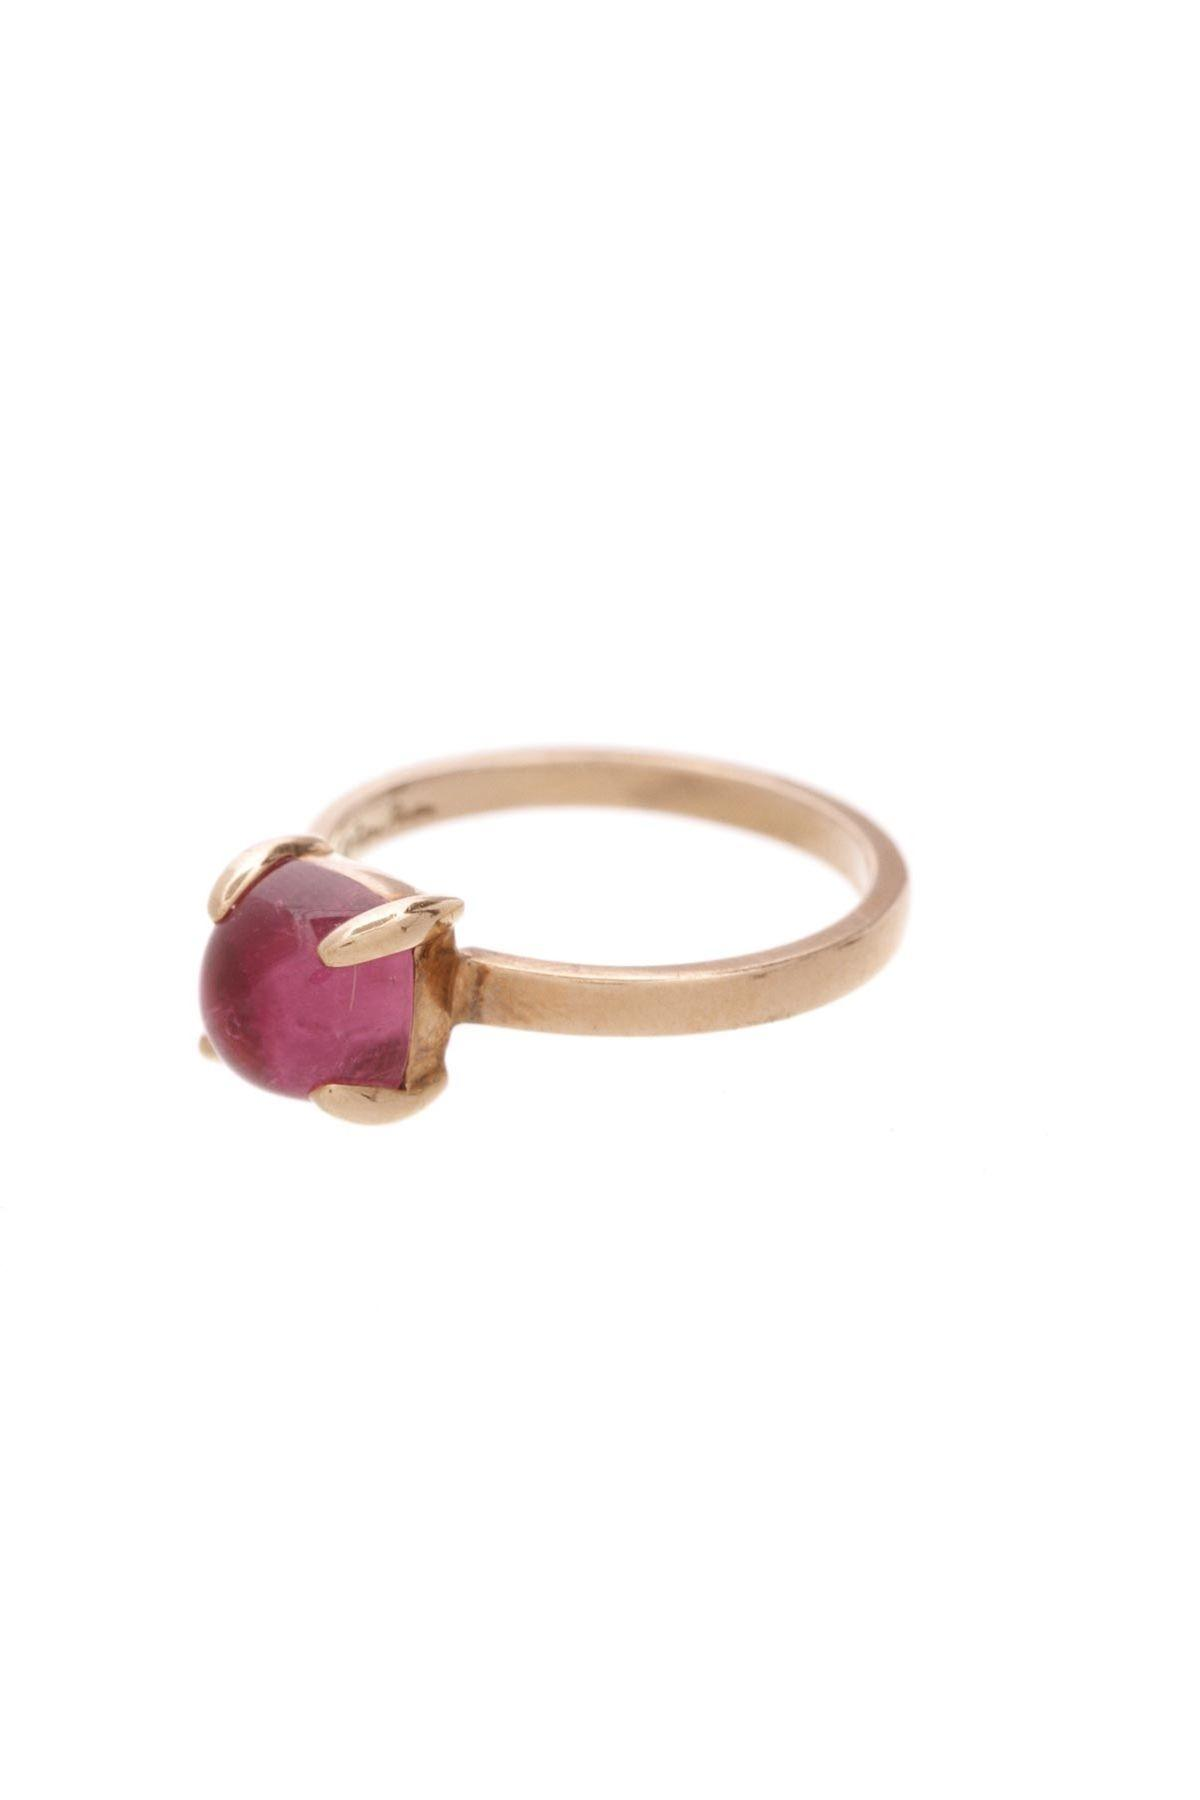 Palomas Sugar Stacks ring in 18k gold with an amethyst - Size 5 Tiffany & Co. VpVjwMal